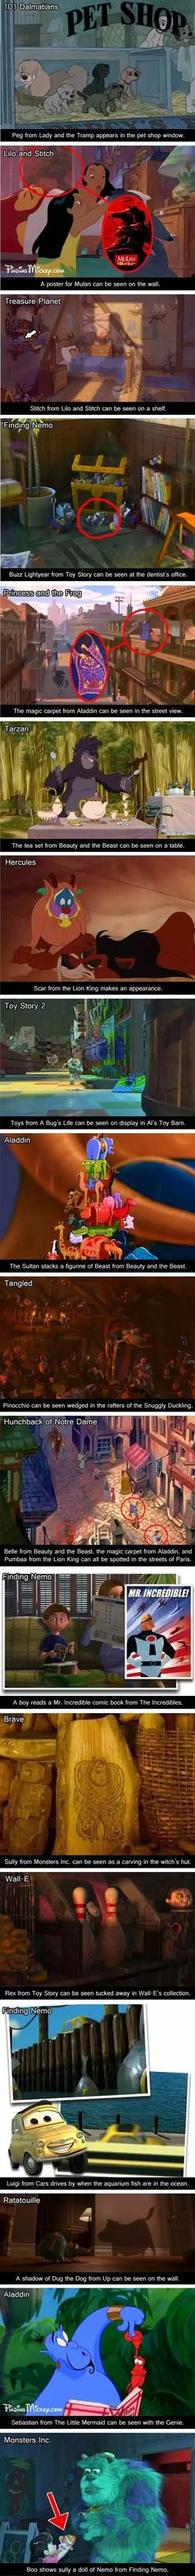 Disney movies within Disney movies!